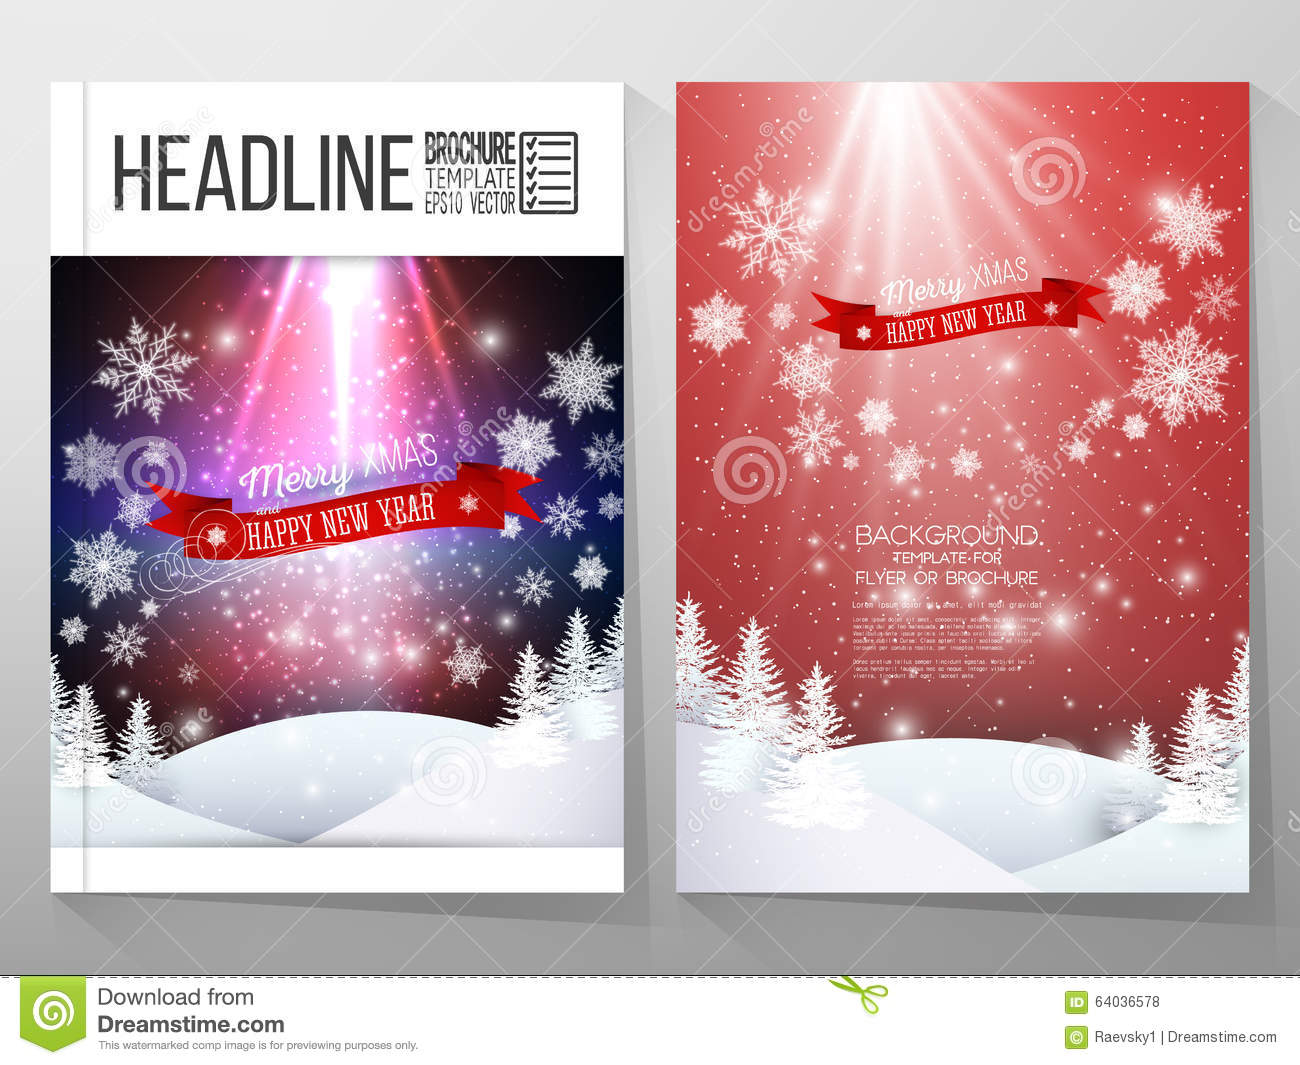 Set of business templates for brochure, flyer or